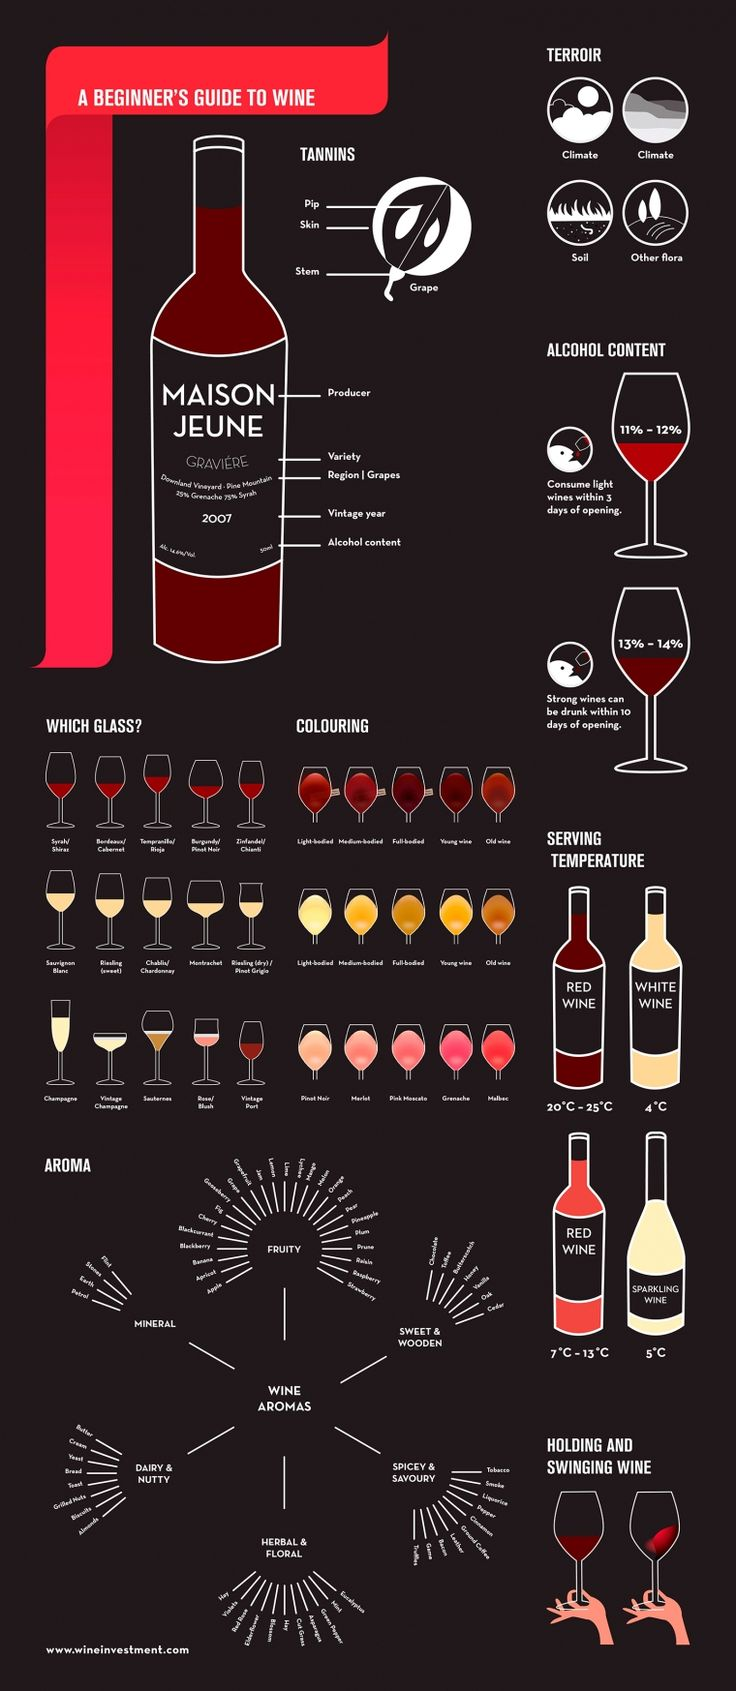 Haven't got a clue about wine? Neither did I till this came along. The aroma, the colouring, the what the heck is that? Check out this nifty wine infographic by Wine Investment